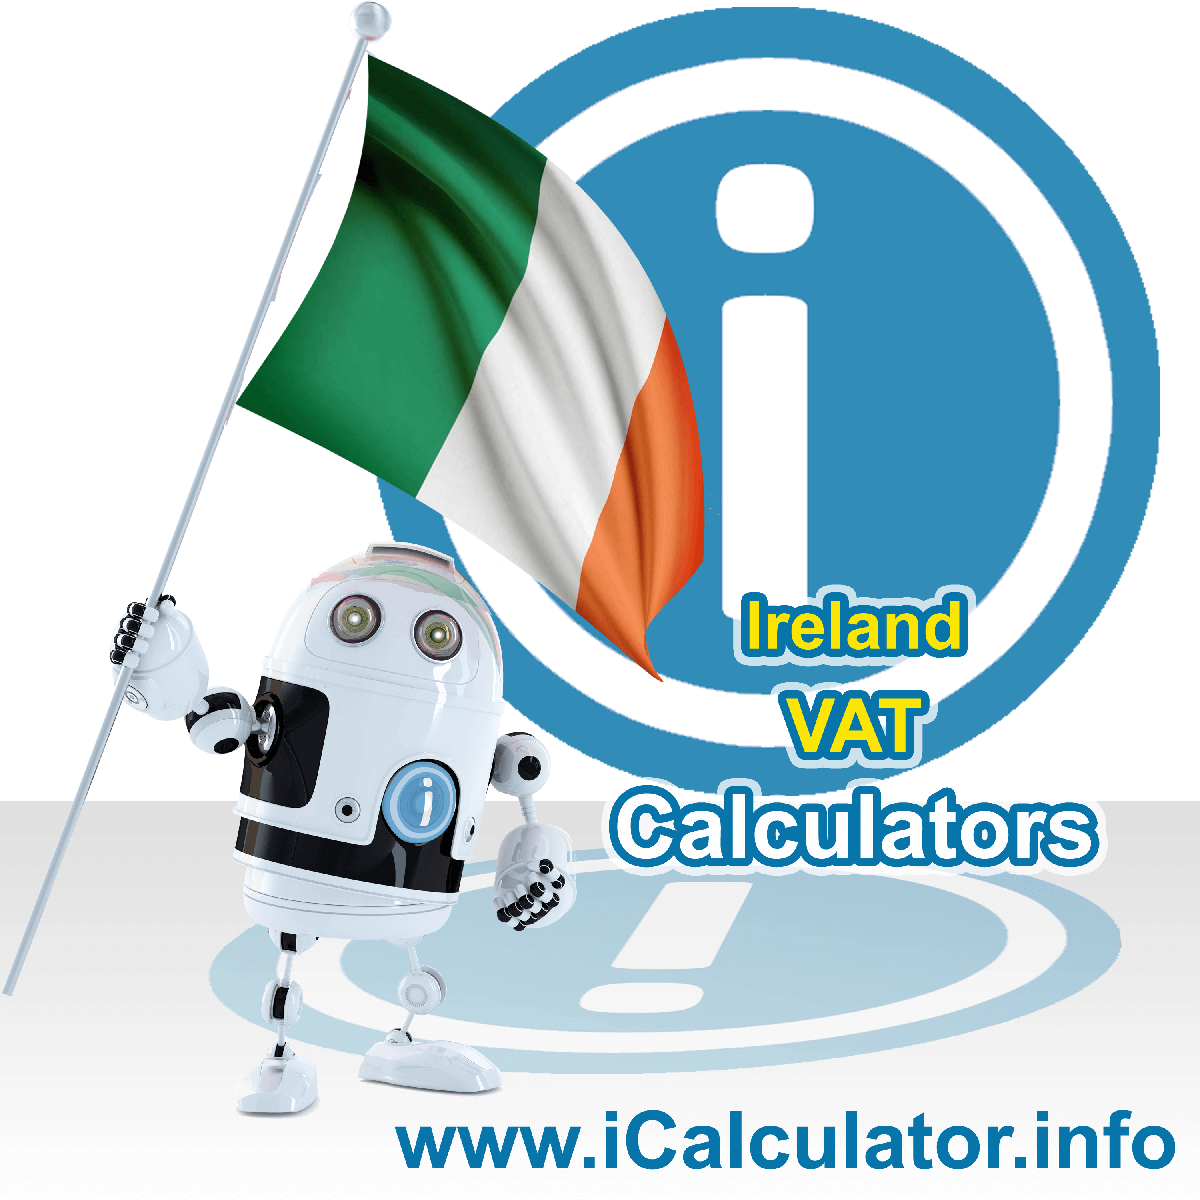 Ireland VAT Calculator. This image shows the Ireland flag and information relating to the VAT formula used for calculating Value Added Tax in Ireland using the Ireland VAT Calculator in 2020